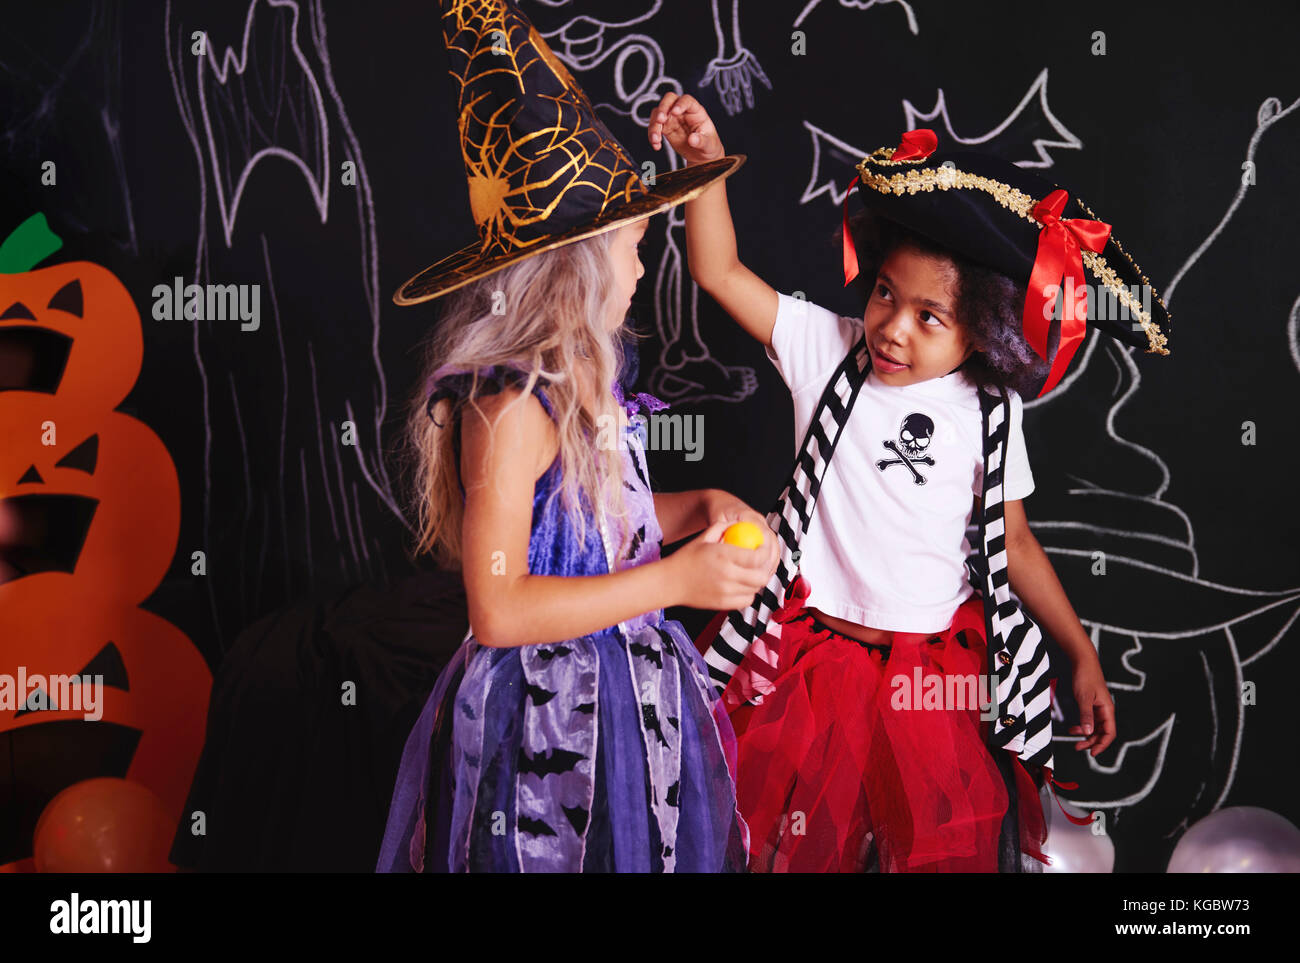 Two girls spending time together at halloween party - Stock Image